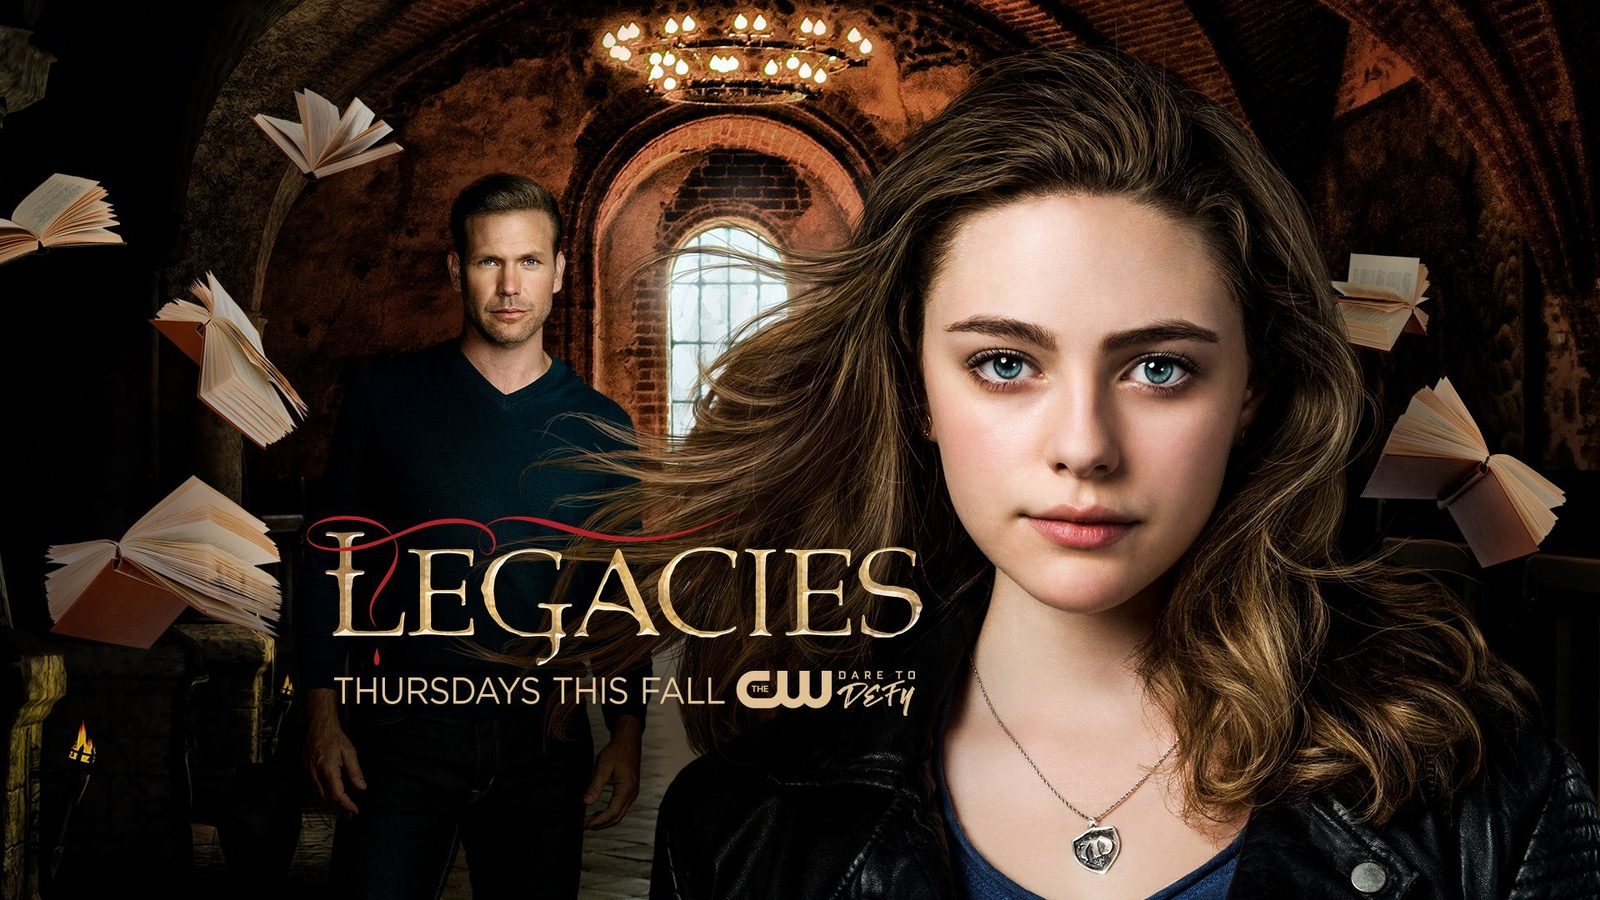 Наследие / Legacies background